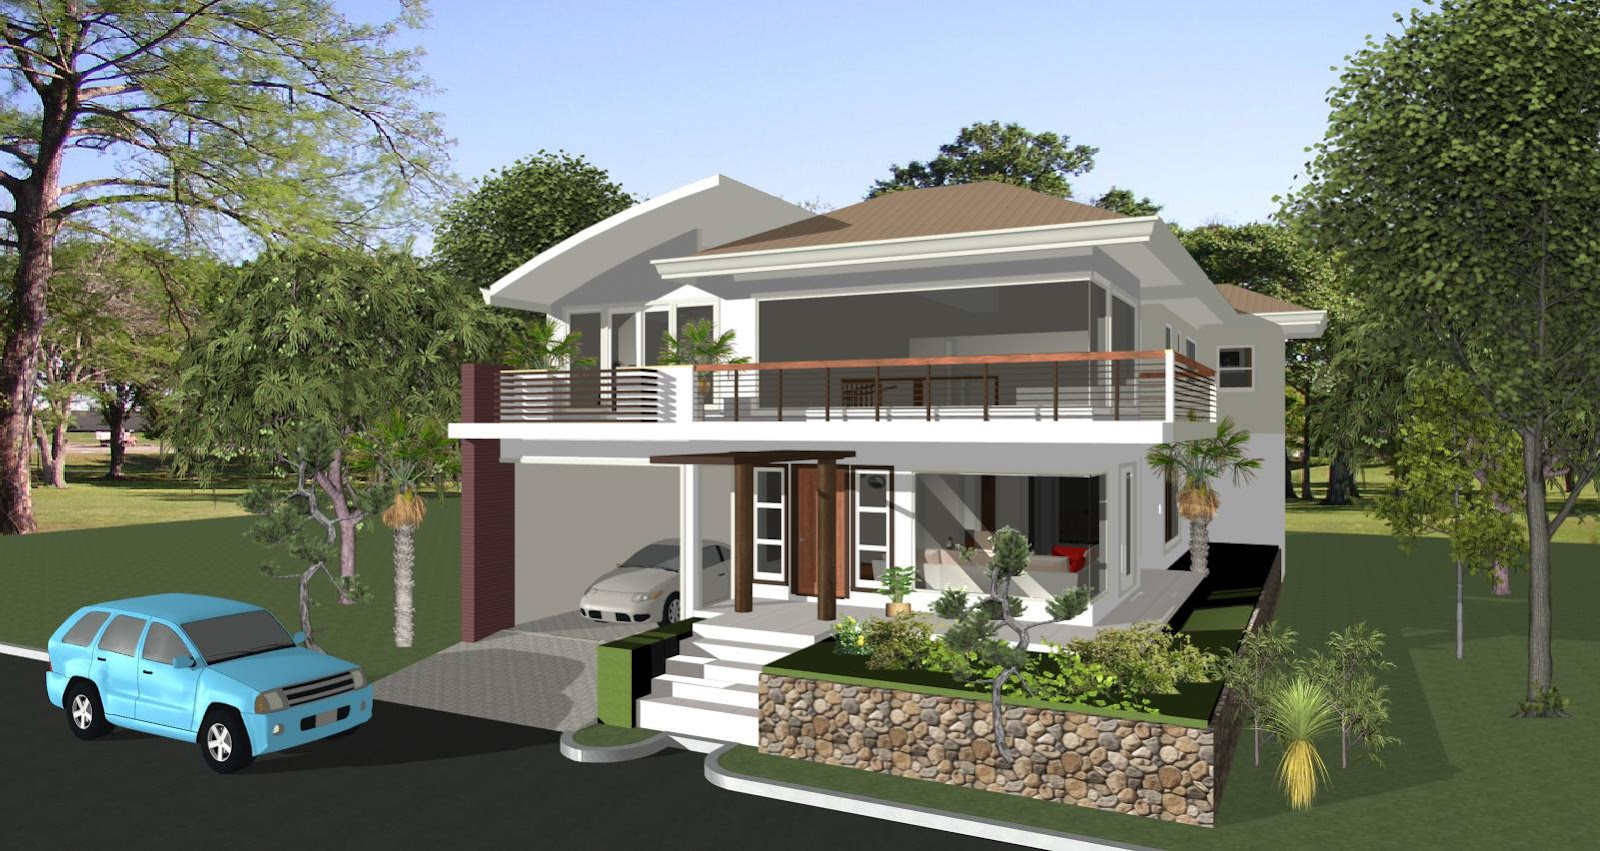 House designs philippines architect bill house plans for Small rest house designs in philippines